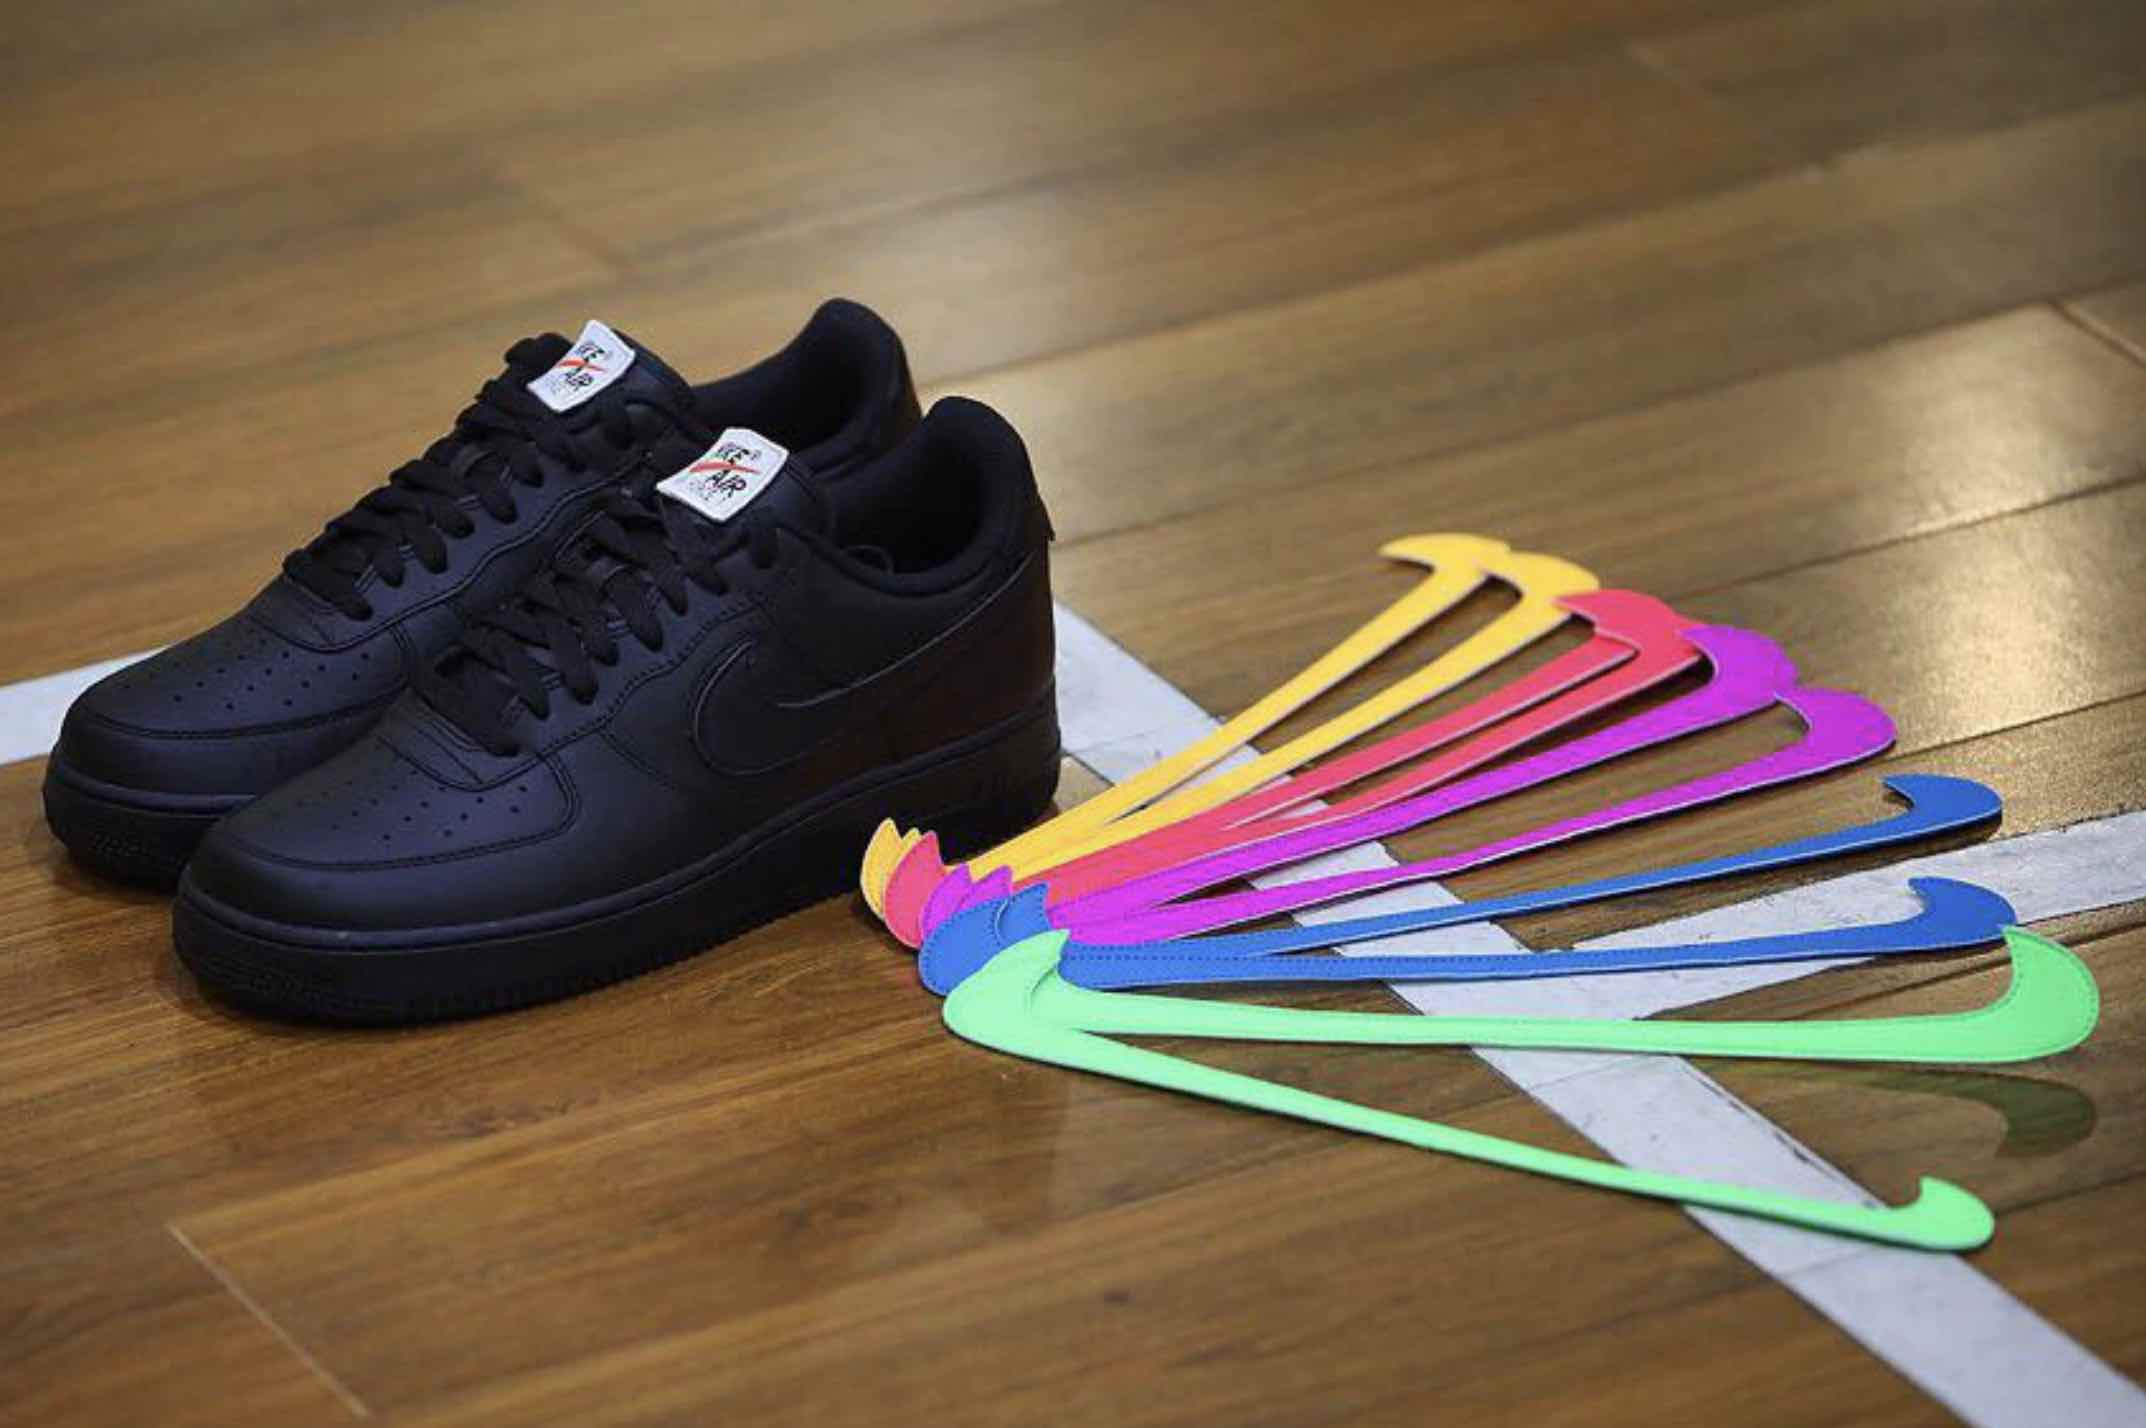 d478f14d1a Nike to Release Special Air Force 1 With Removable Velcro Swooshes –  Blurred Culture